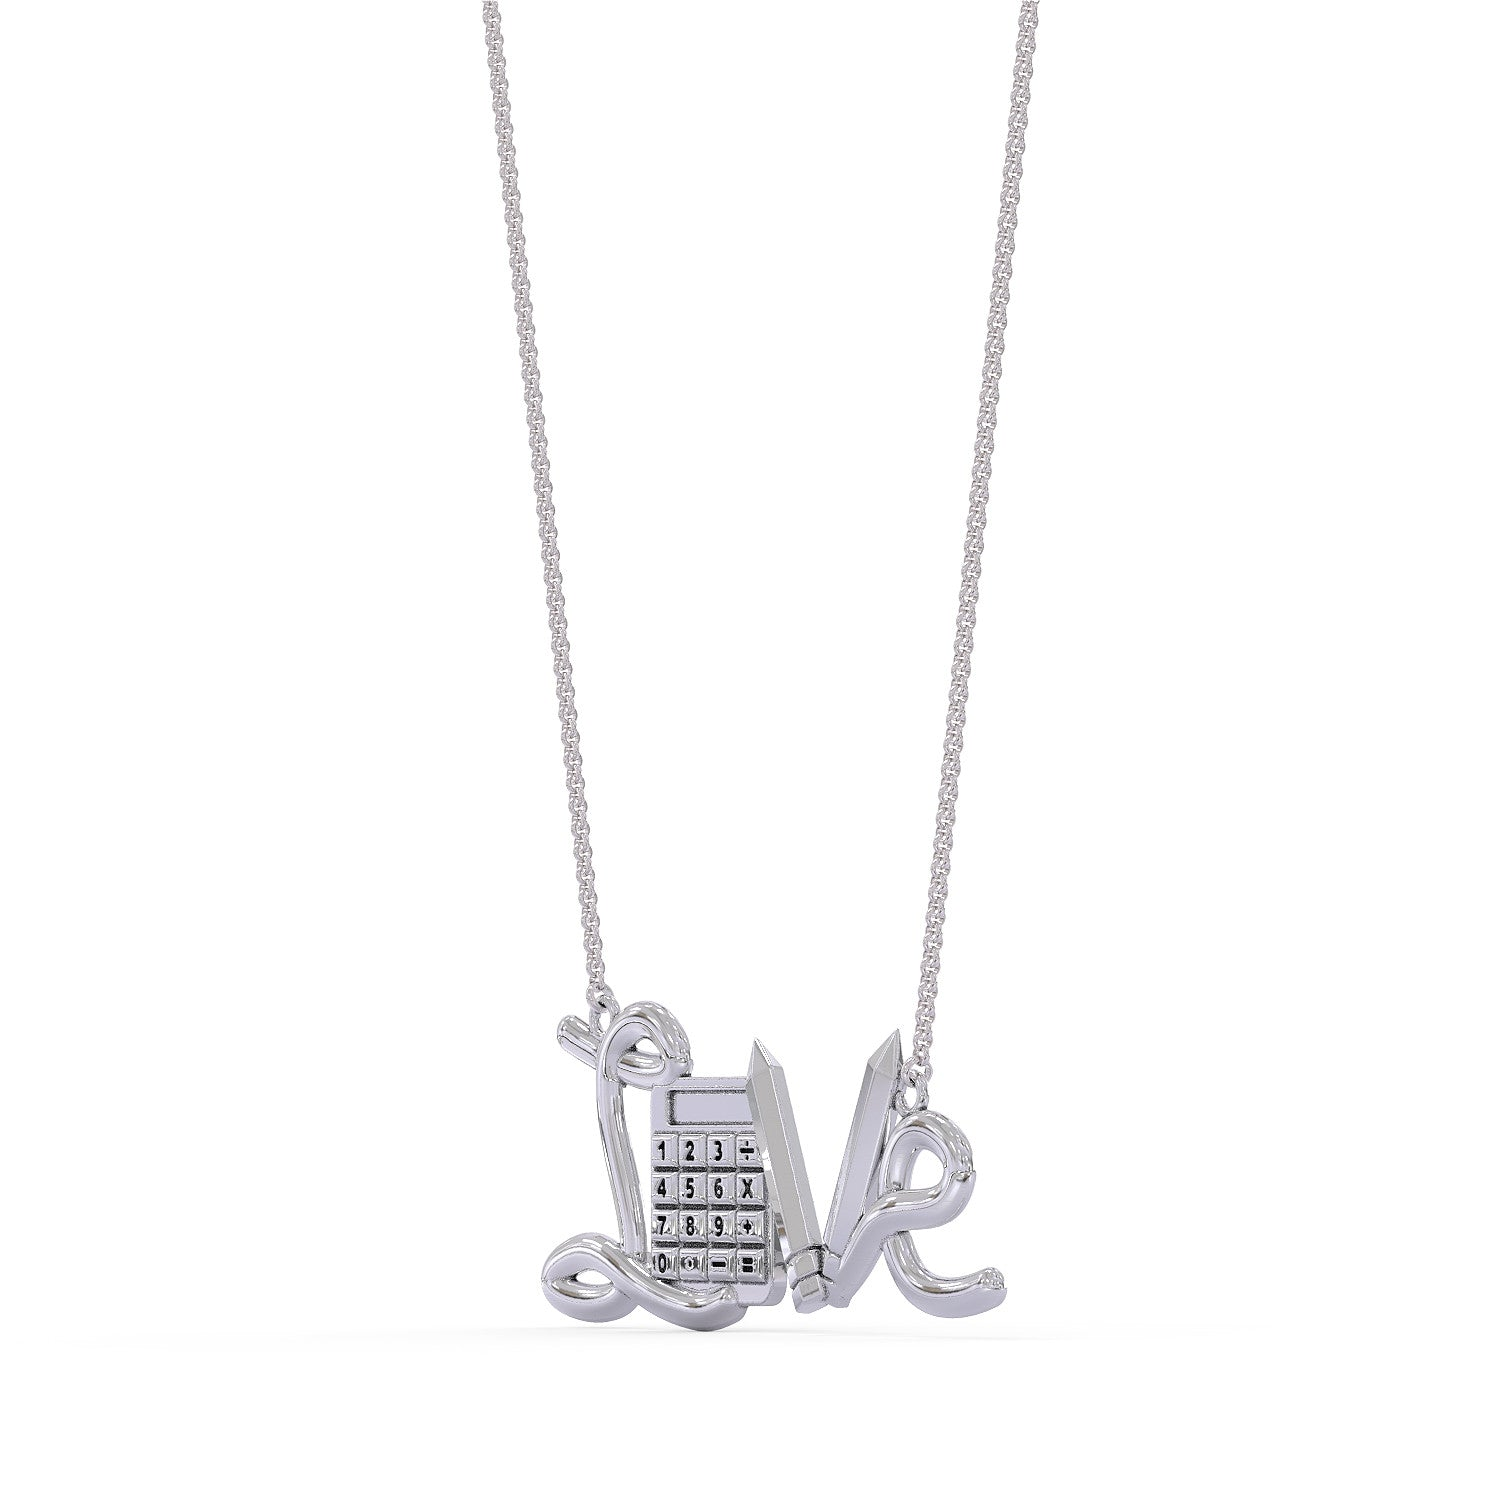 Accountant Love Necklace